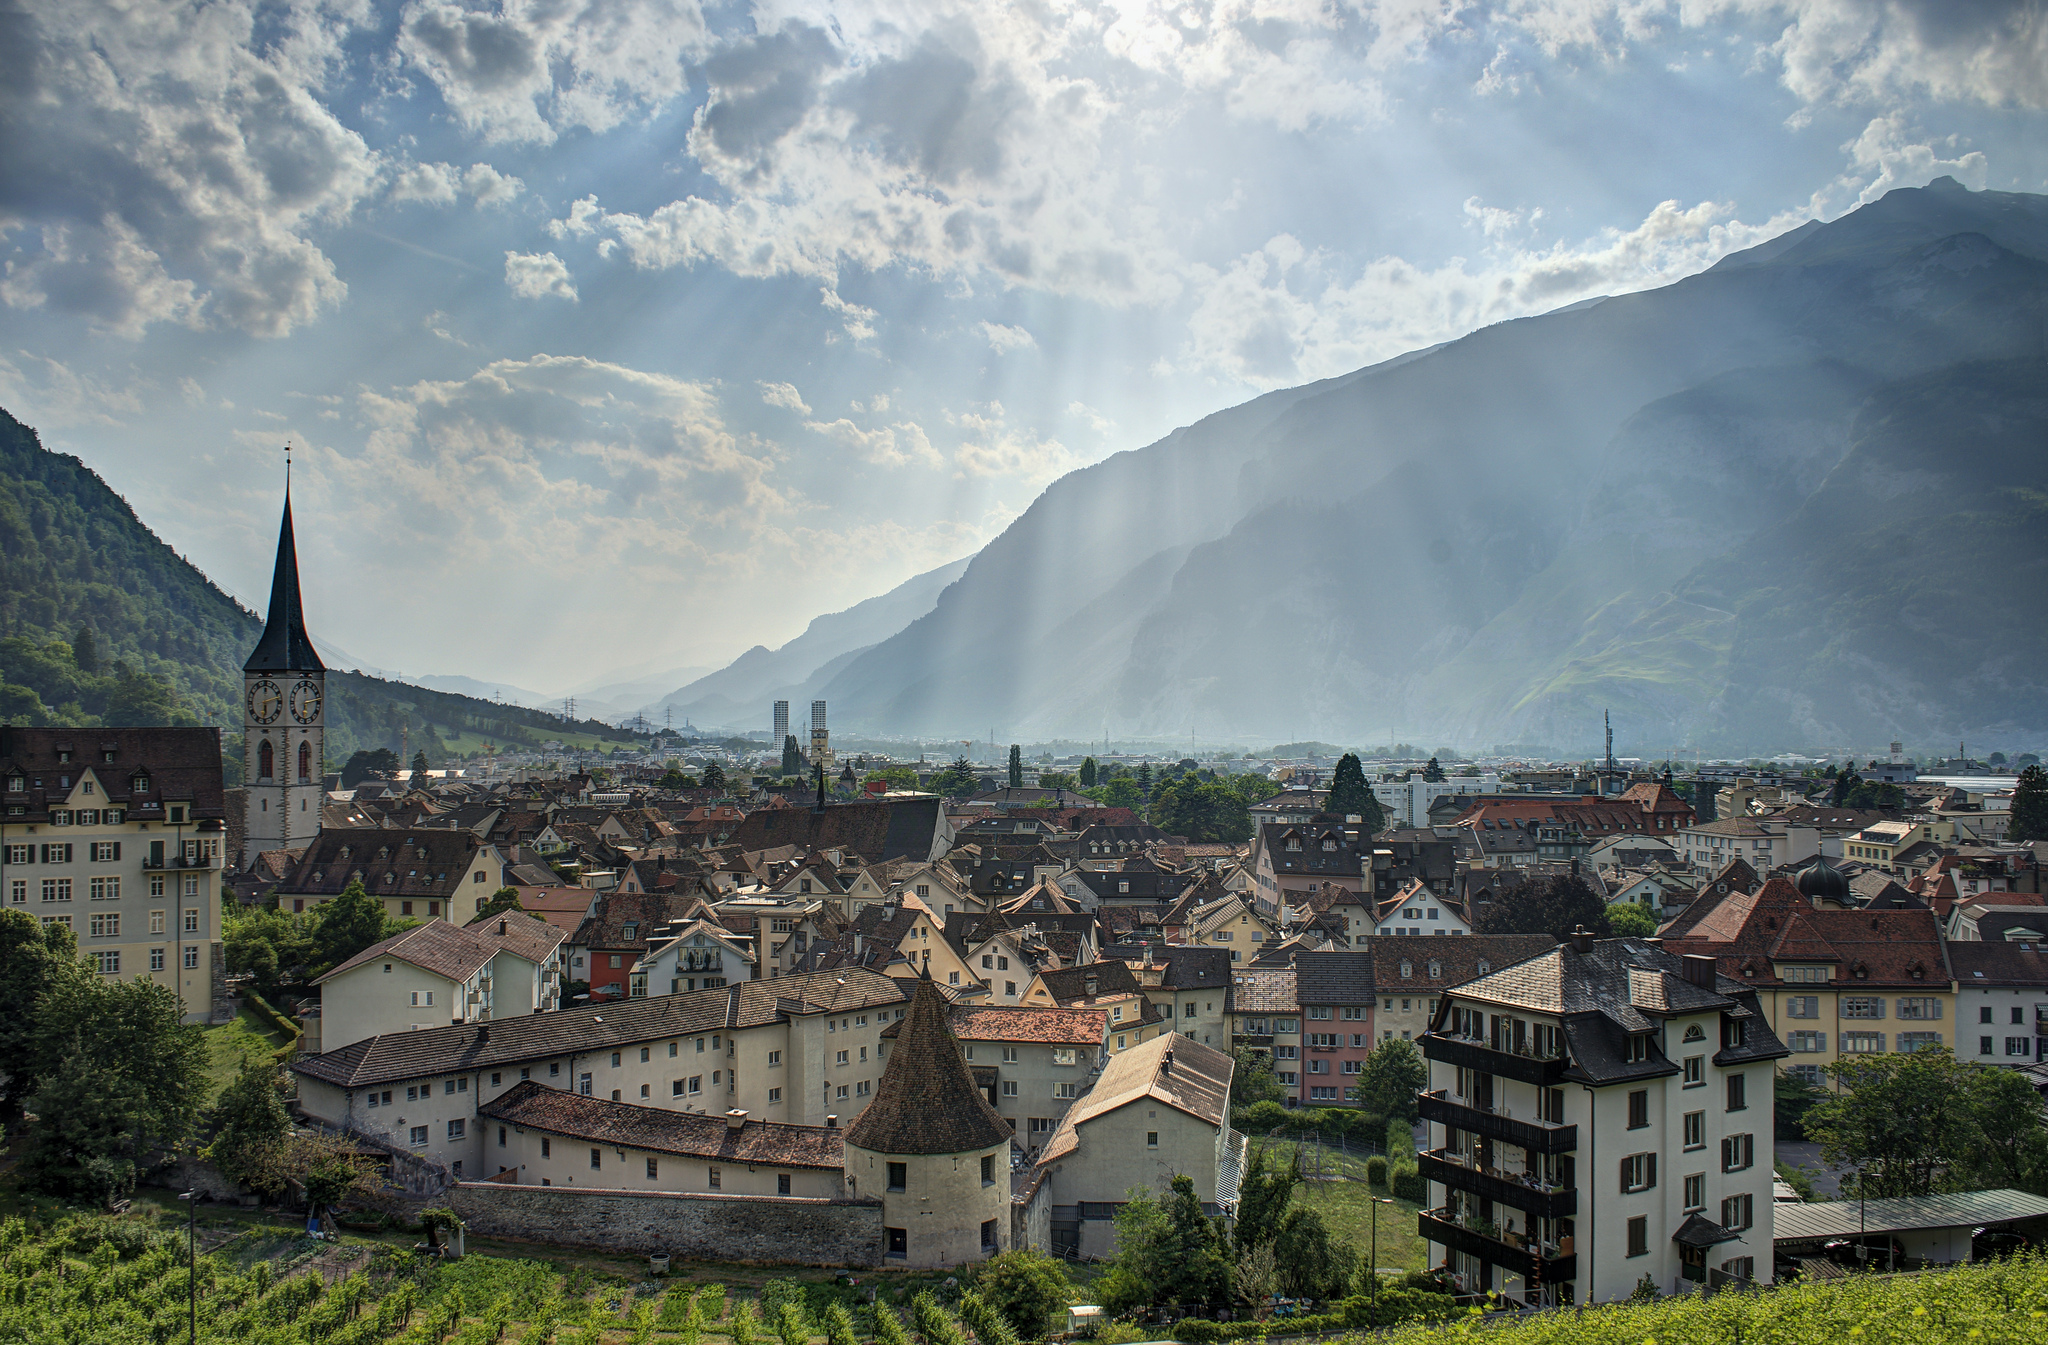 Switzerland, town in the valley between mountains